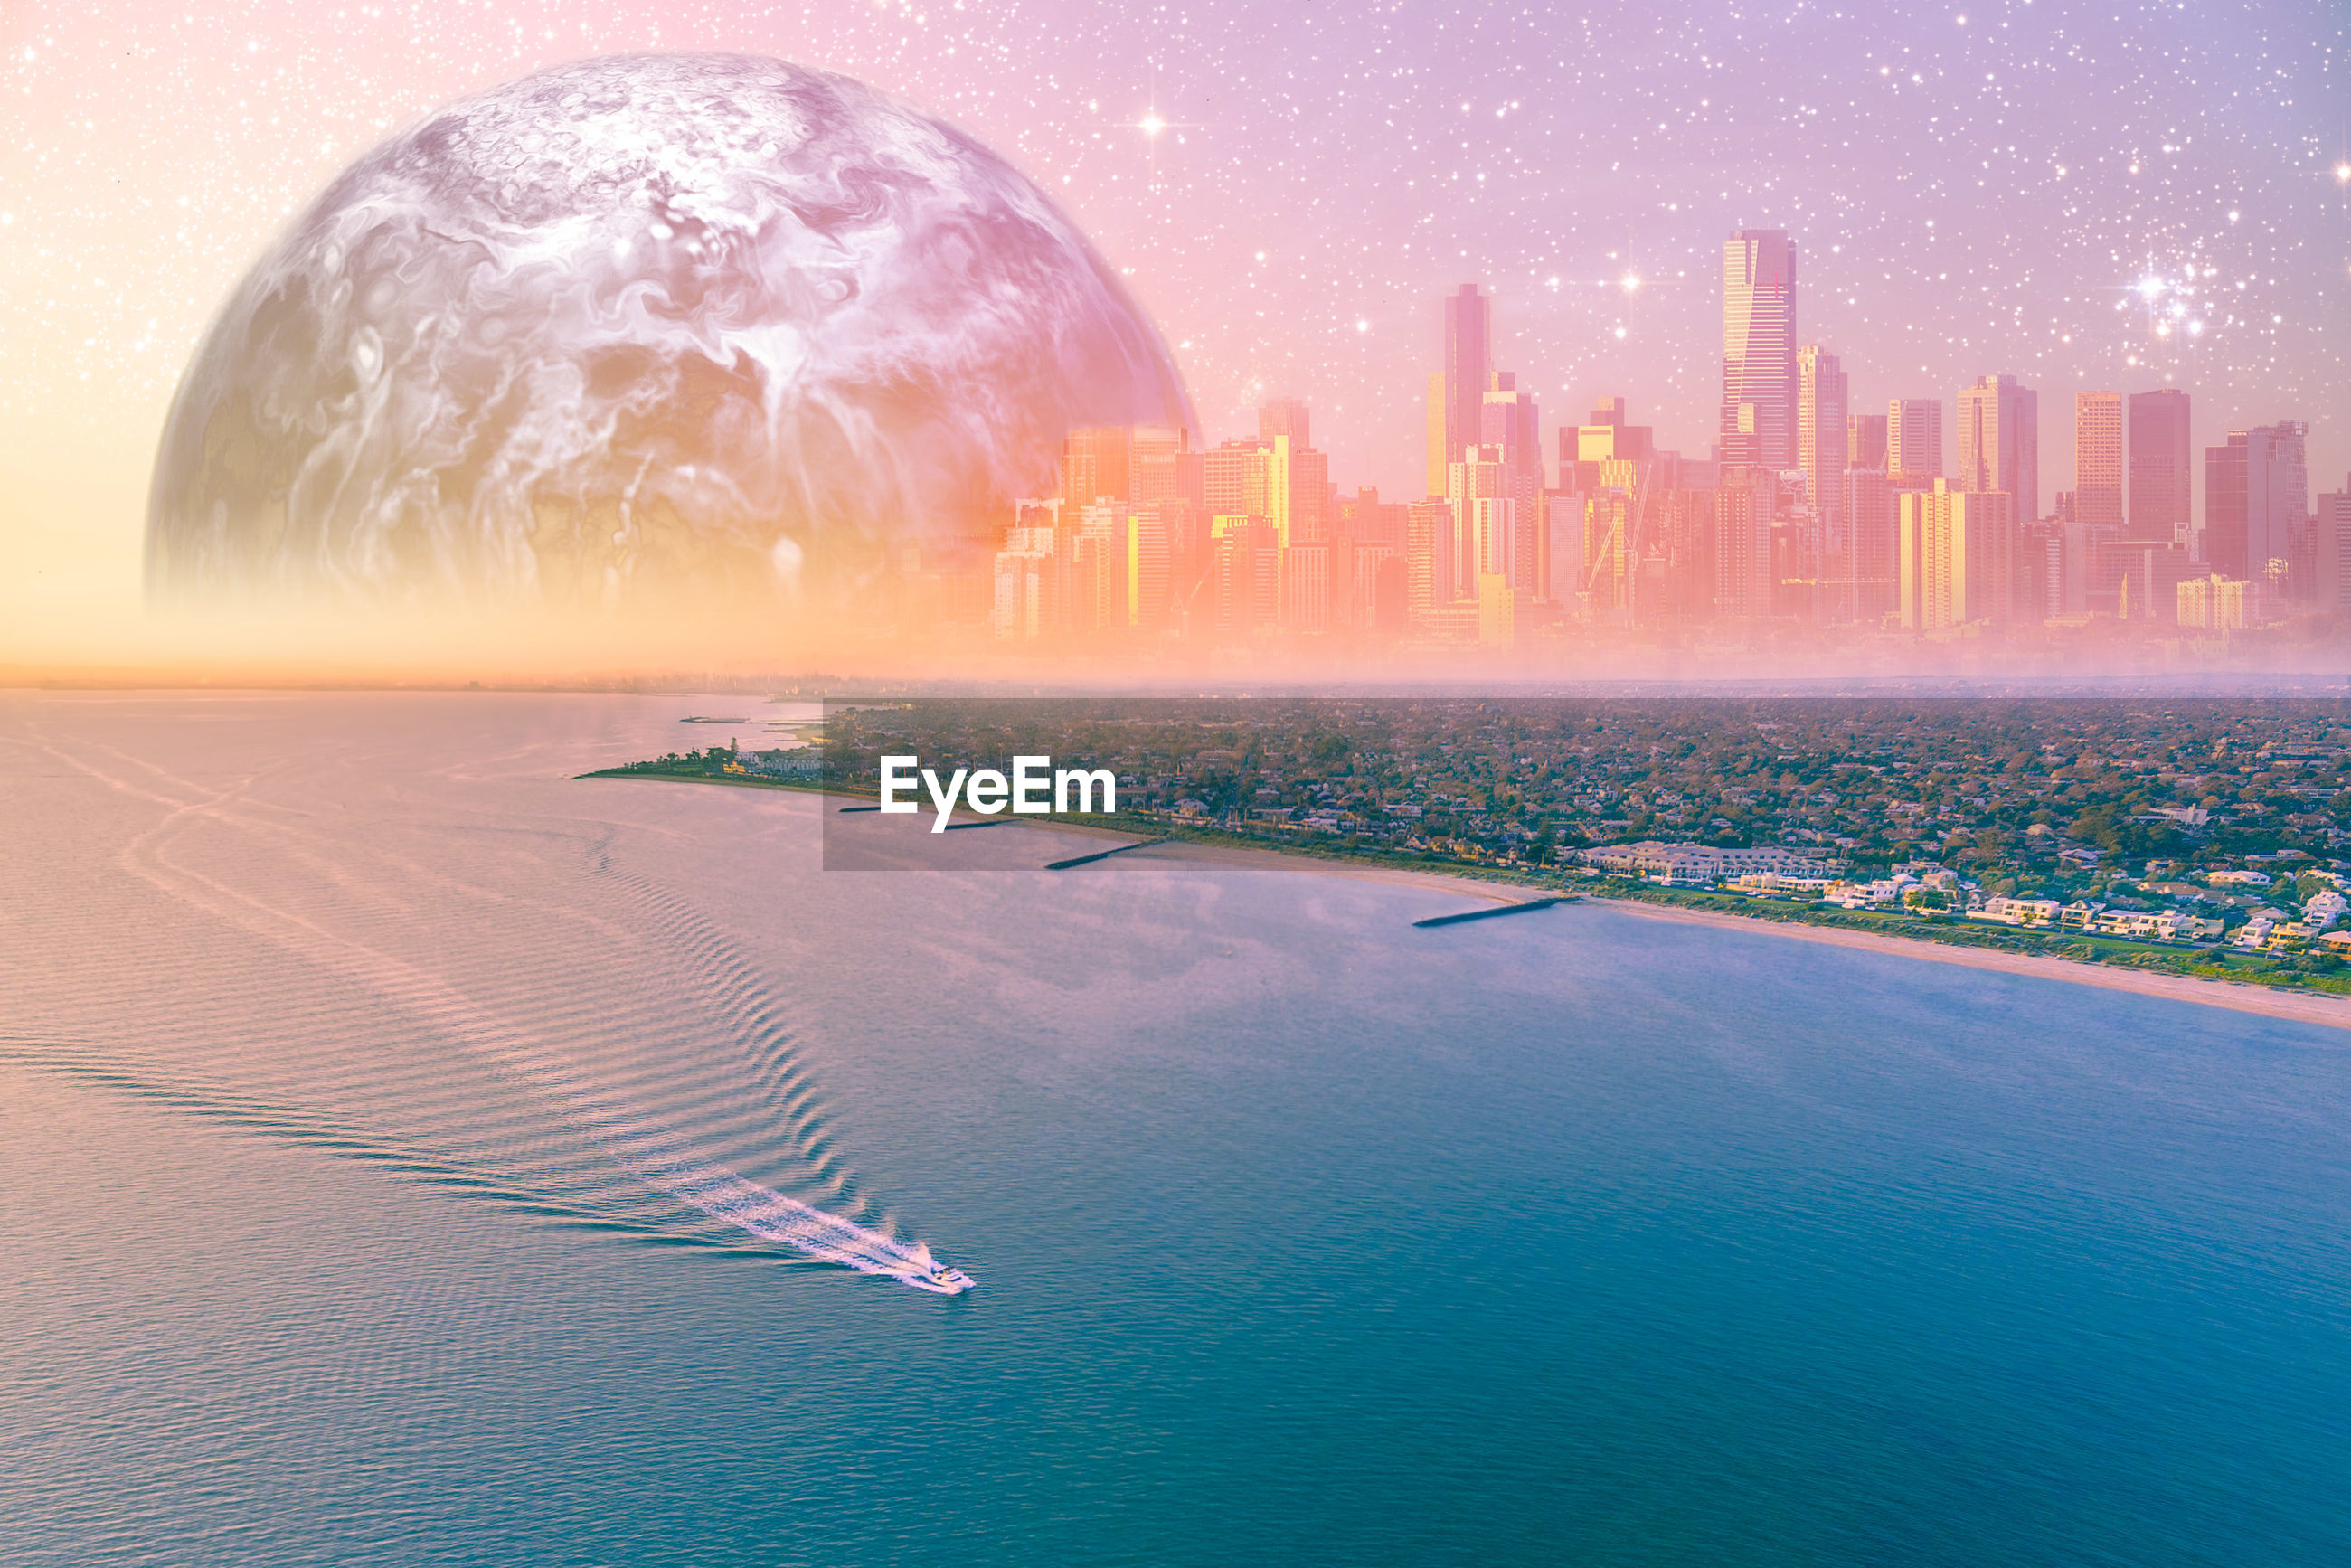 Digital composite image of sea against planet during sunset